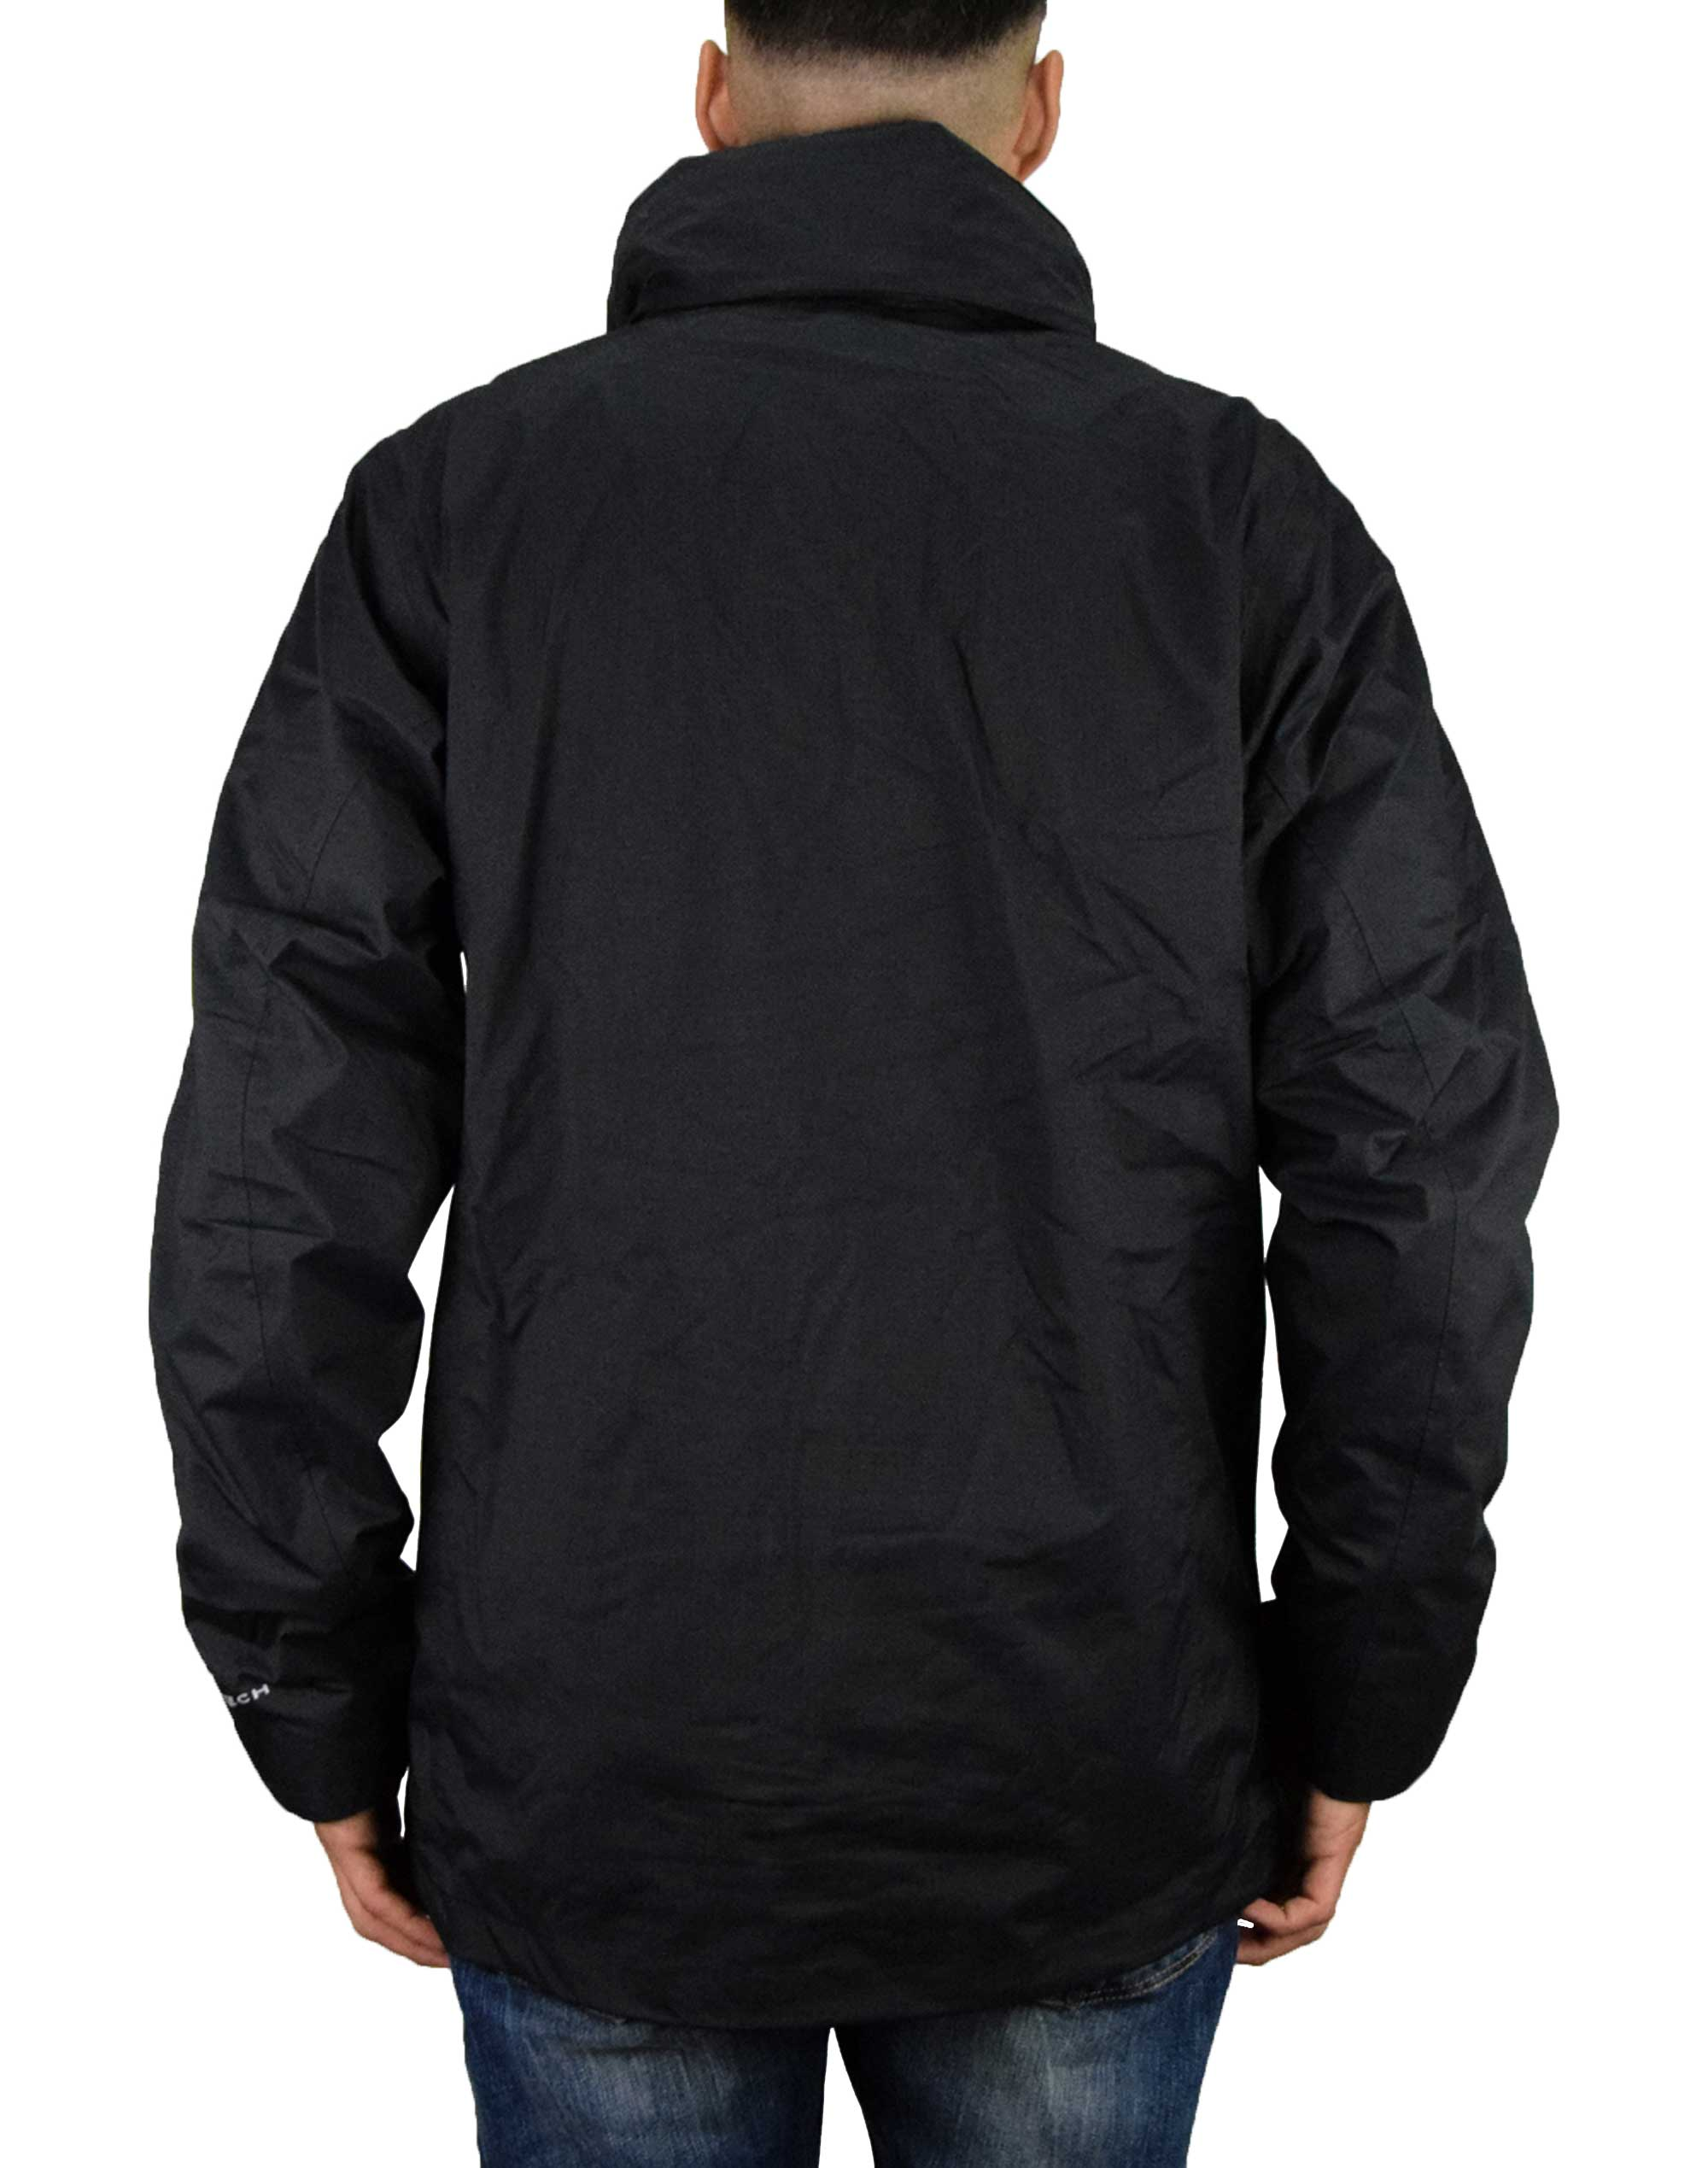 Columbia Mission Air™ Interchange Jacket (WO7211-010) Black